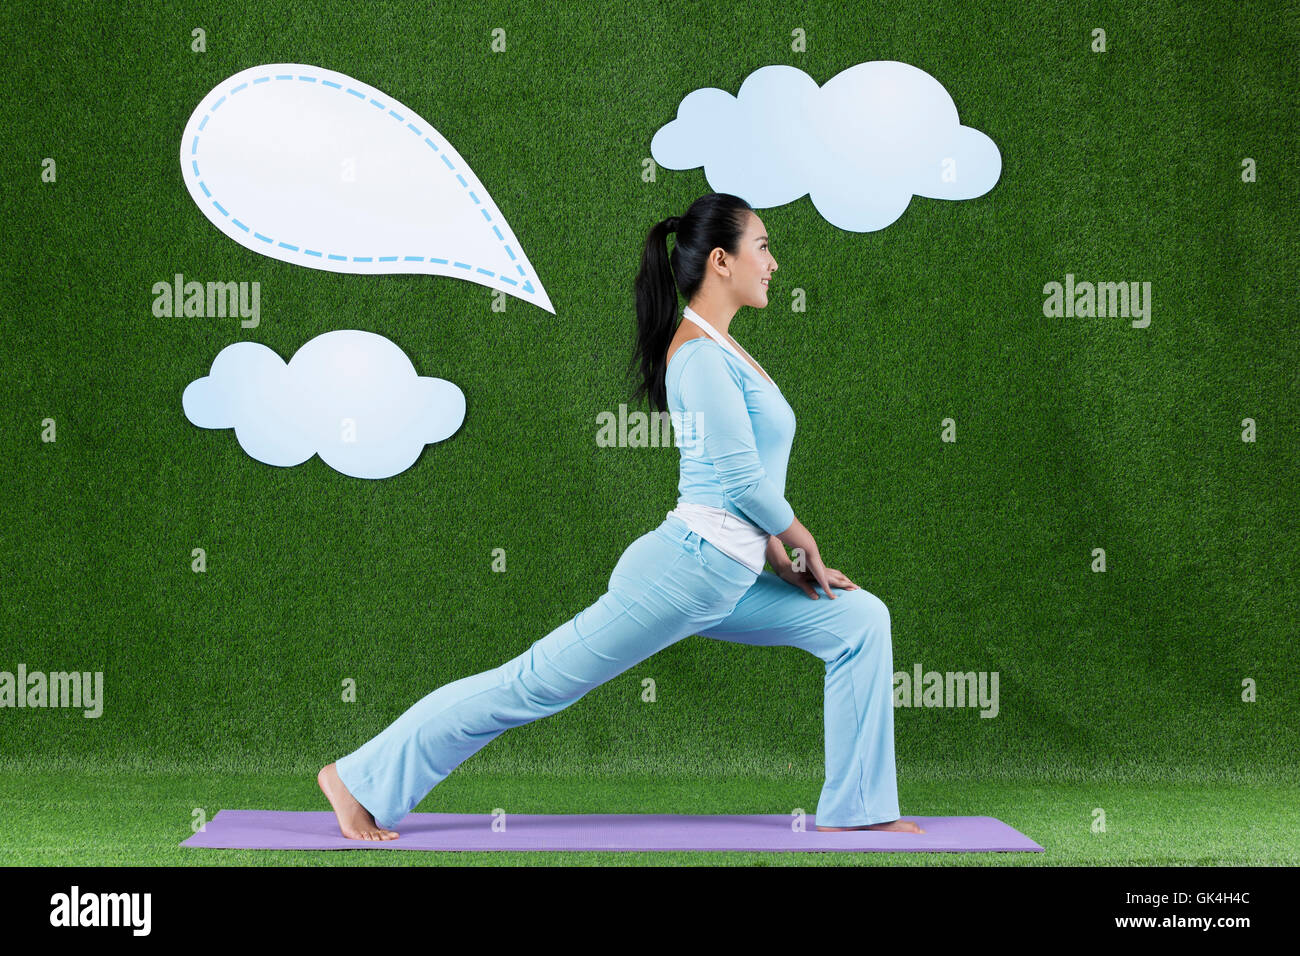 Grassland Creative Women Yoga - Stock Image